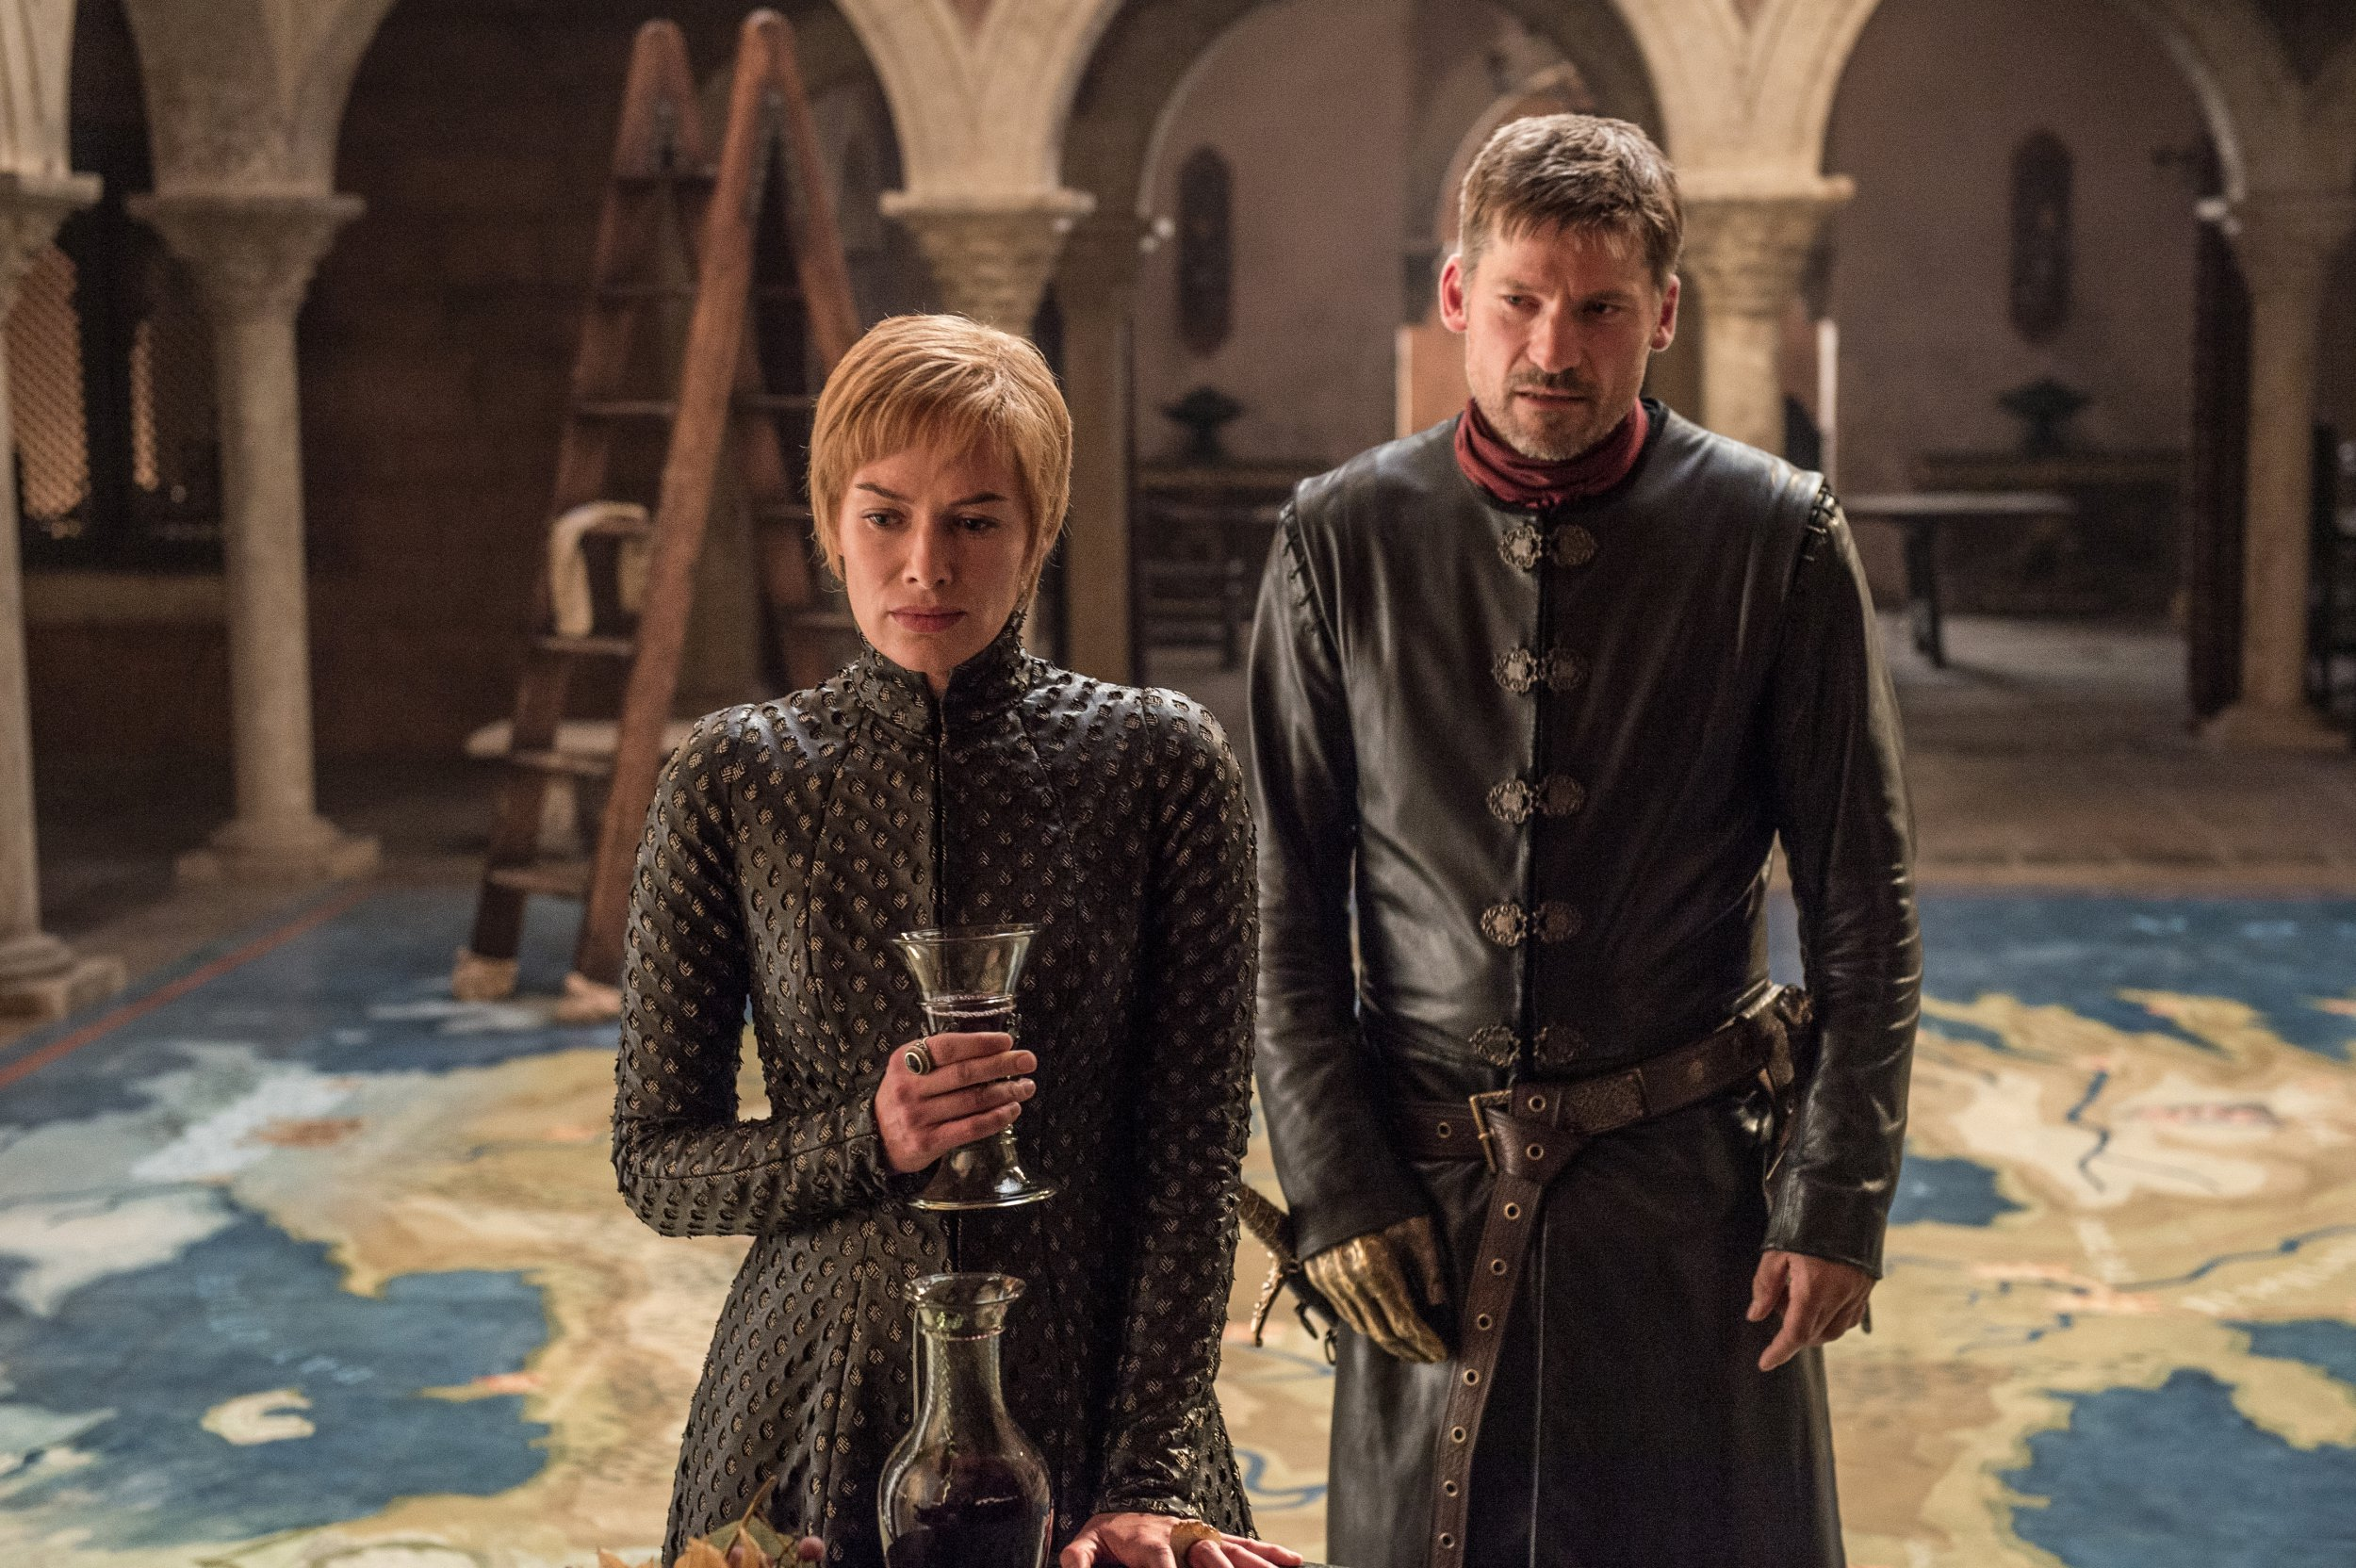 Television programme : Game of thrones. Lena Headey as Cersei Lannister, Nikolaj Coster-Waldau as Jaime Lannister